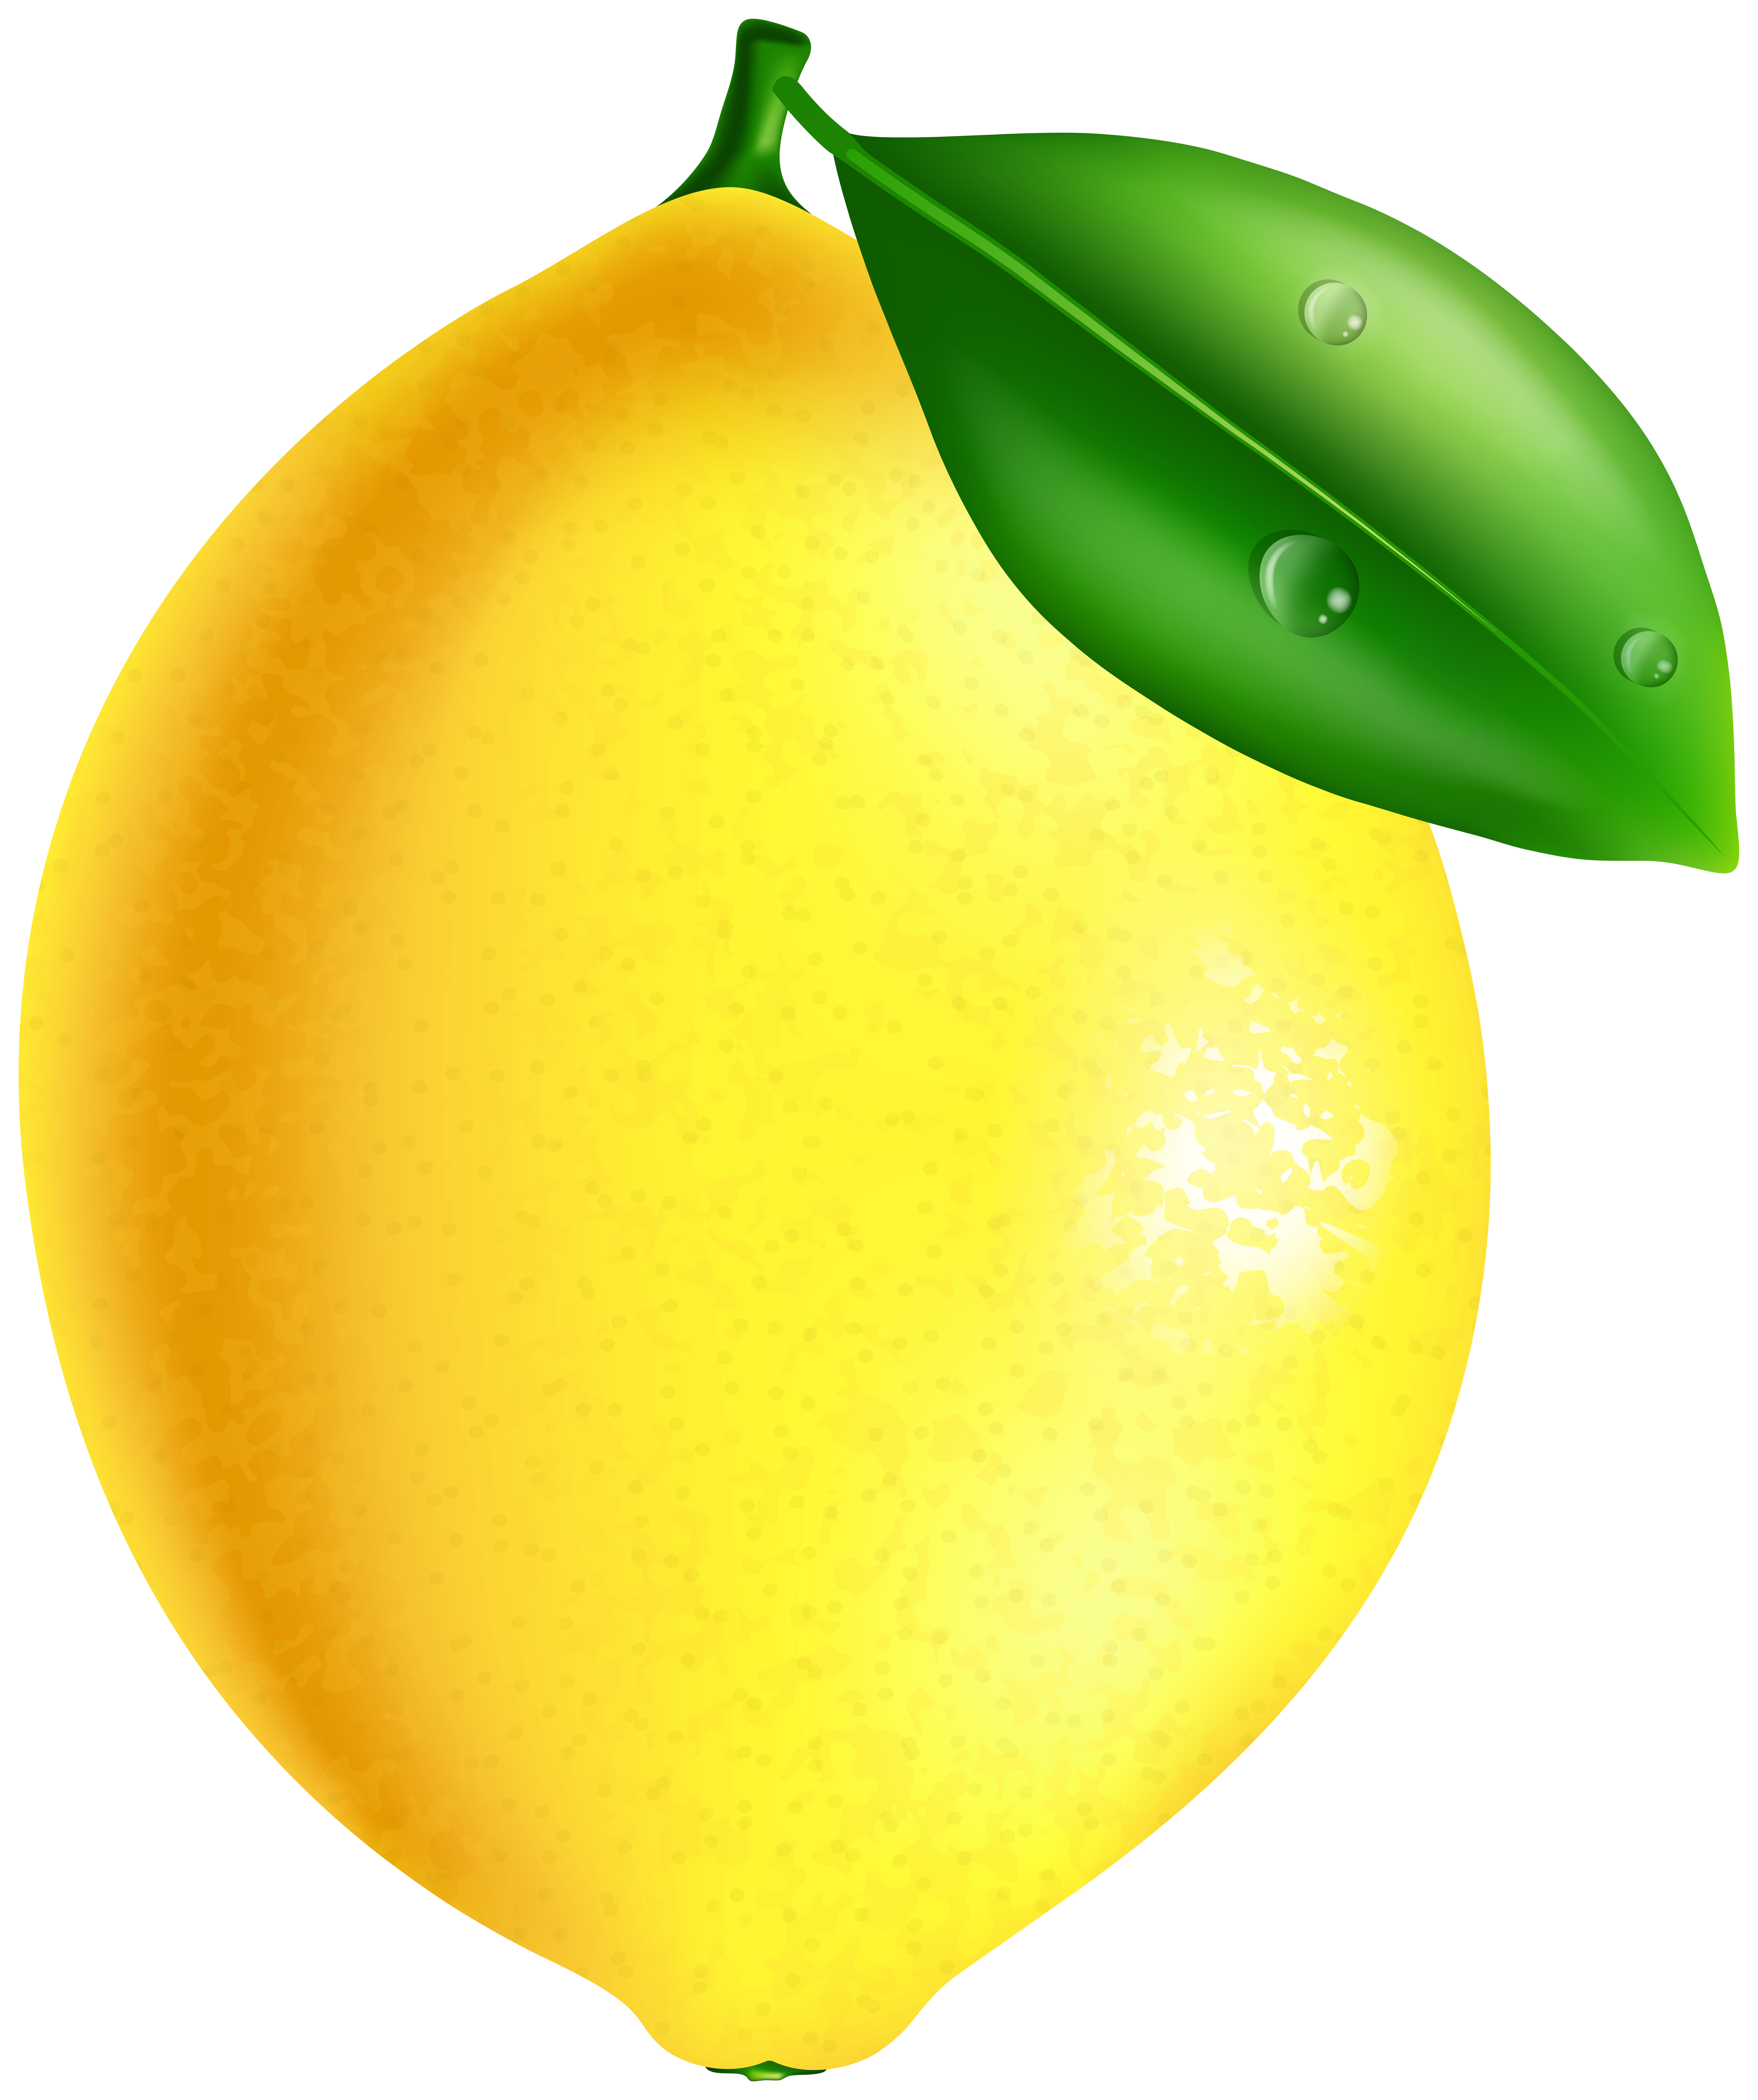 Lemons clipart high resolution. Fresh lemon png gallery